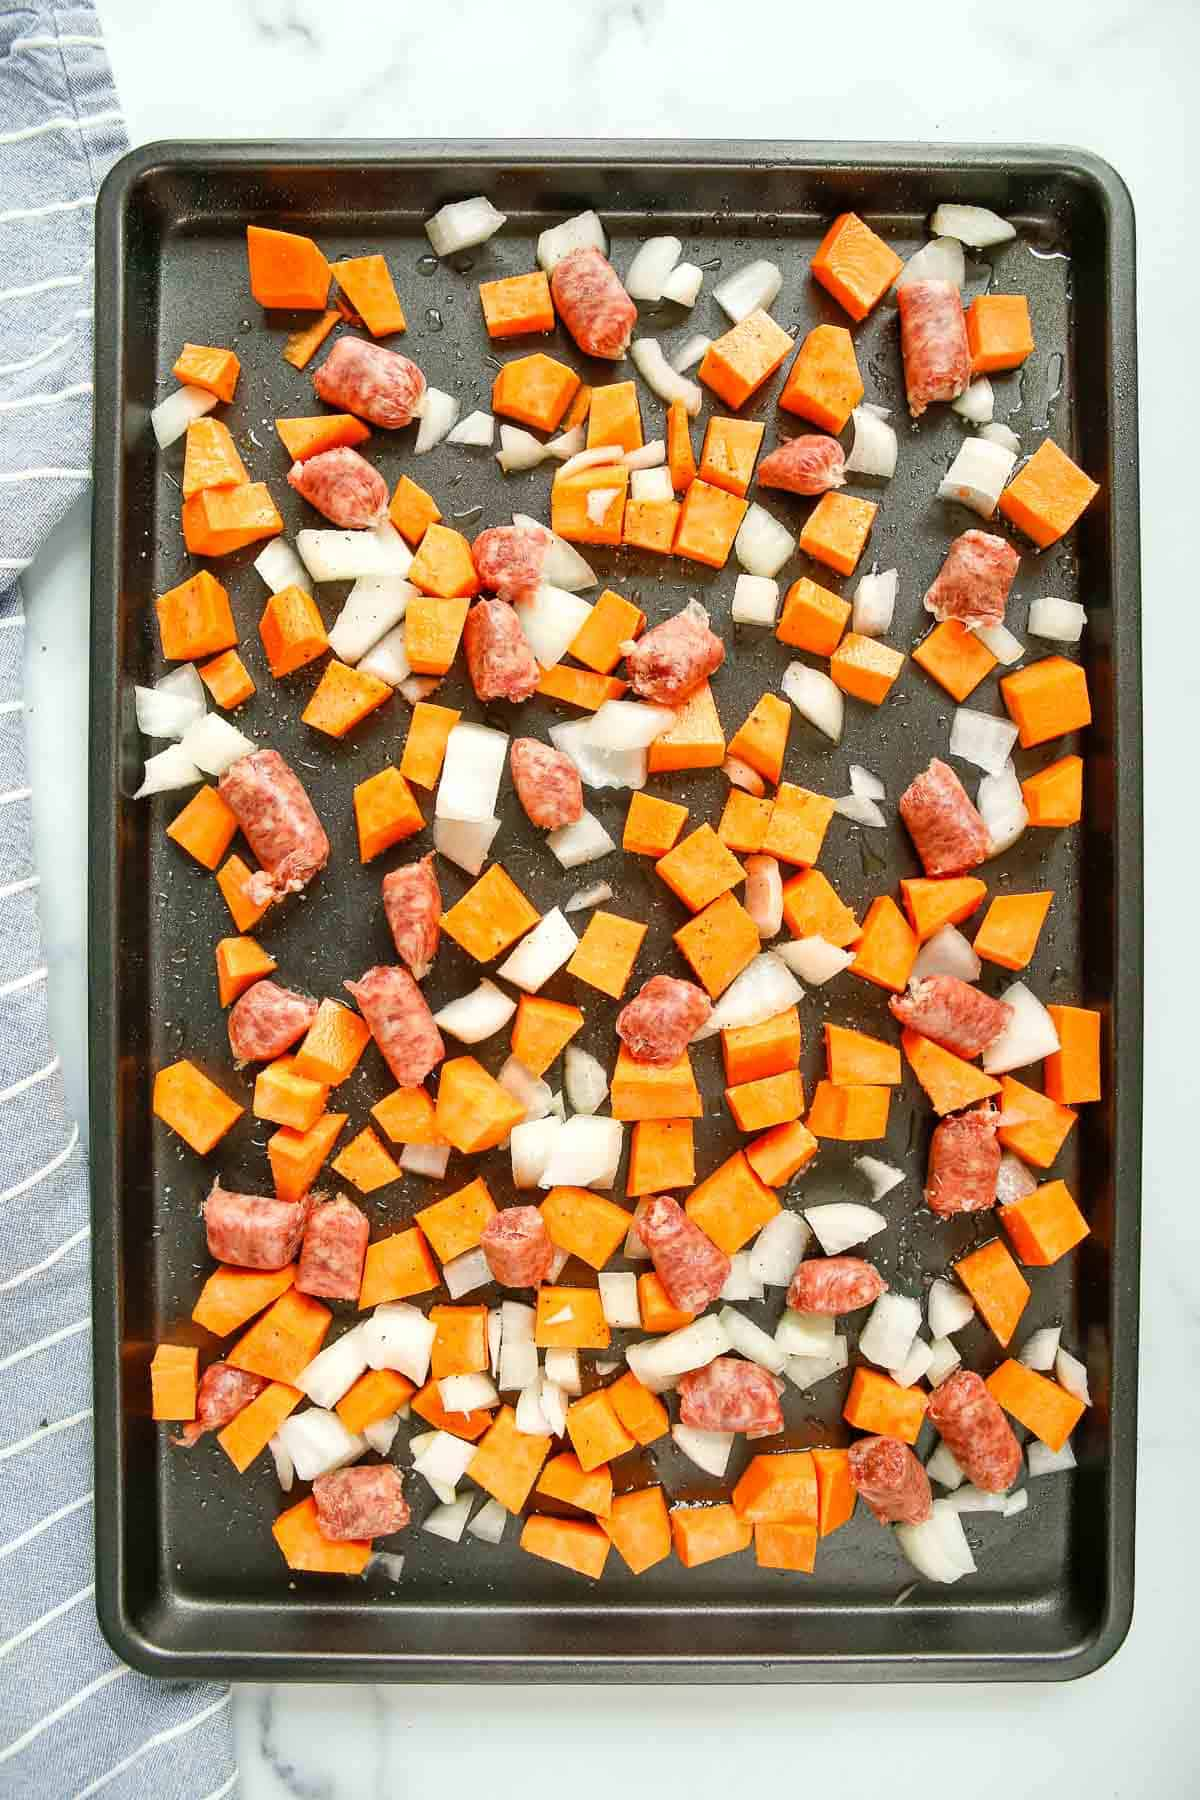 Sweet potatoes, onion, and uncooked sausage on a sheet pan.